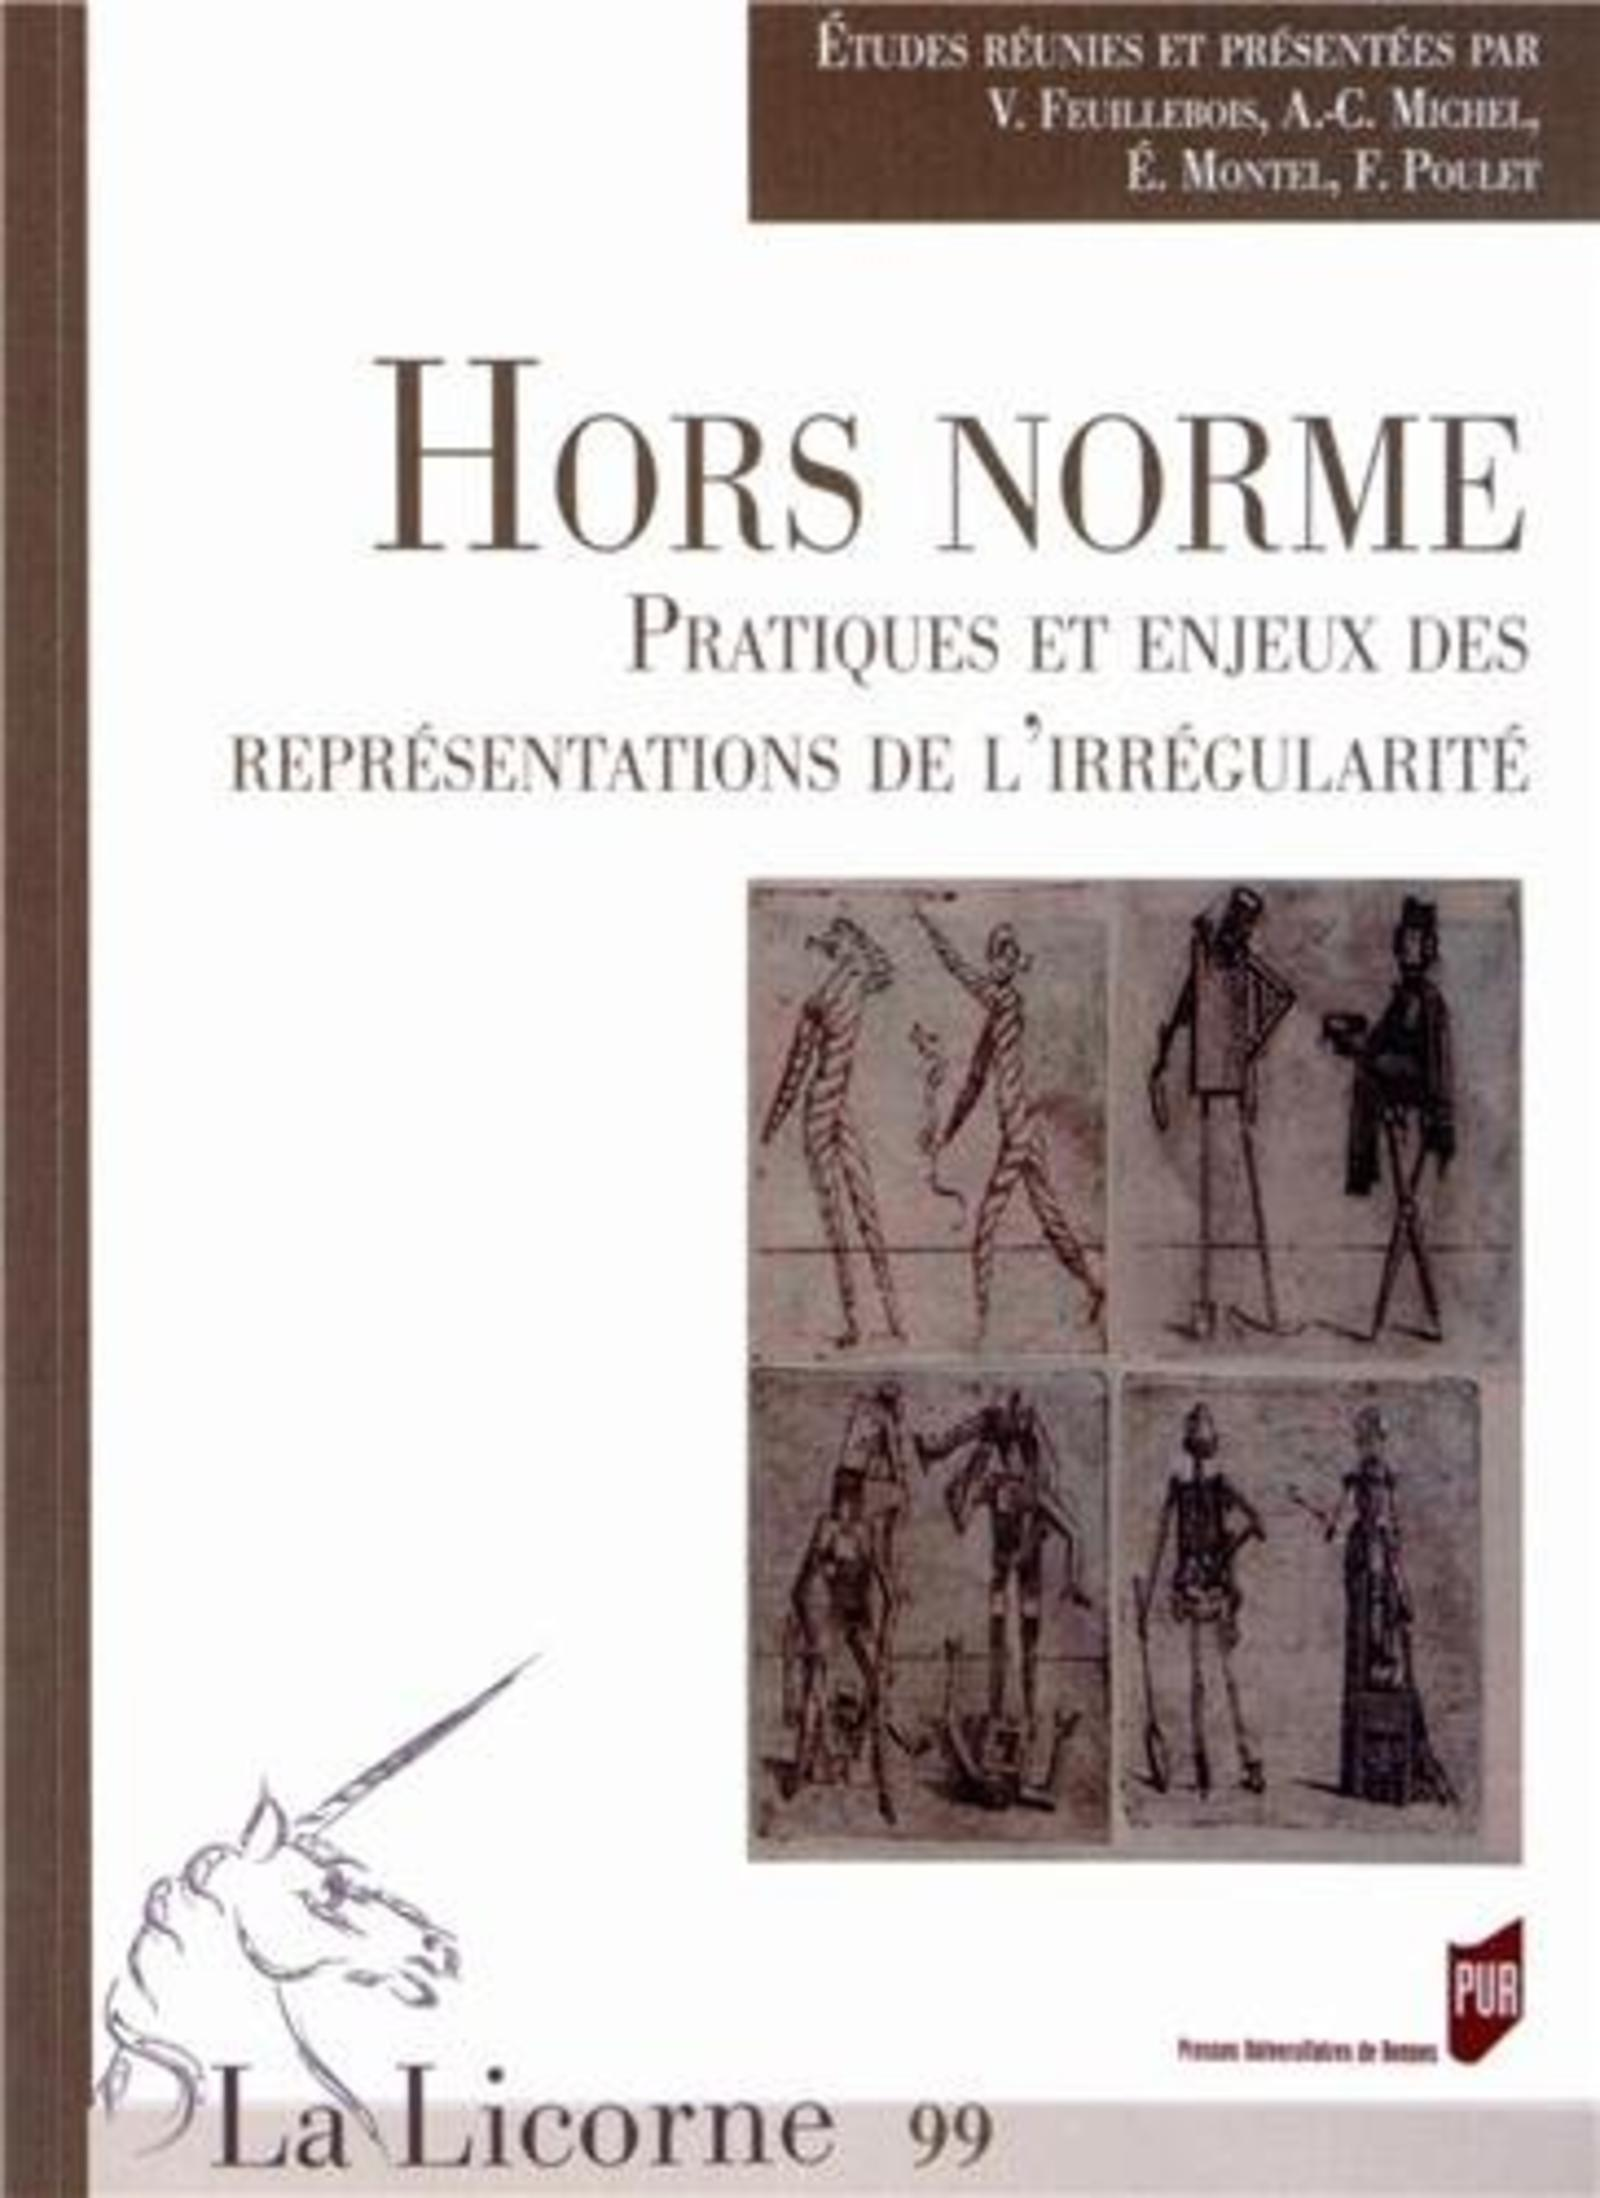 HORS NORME